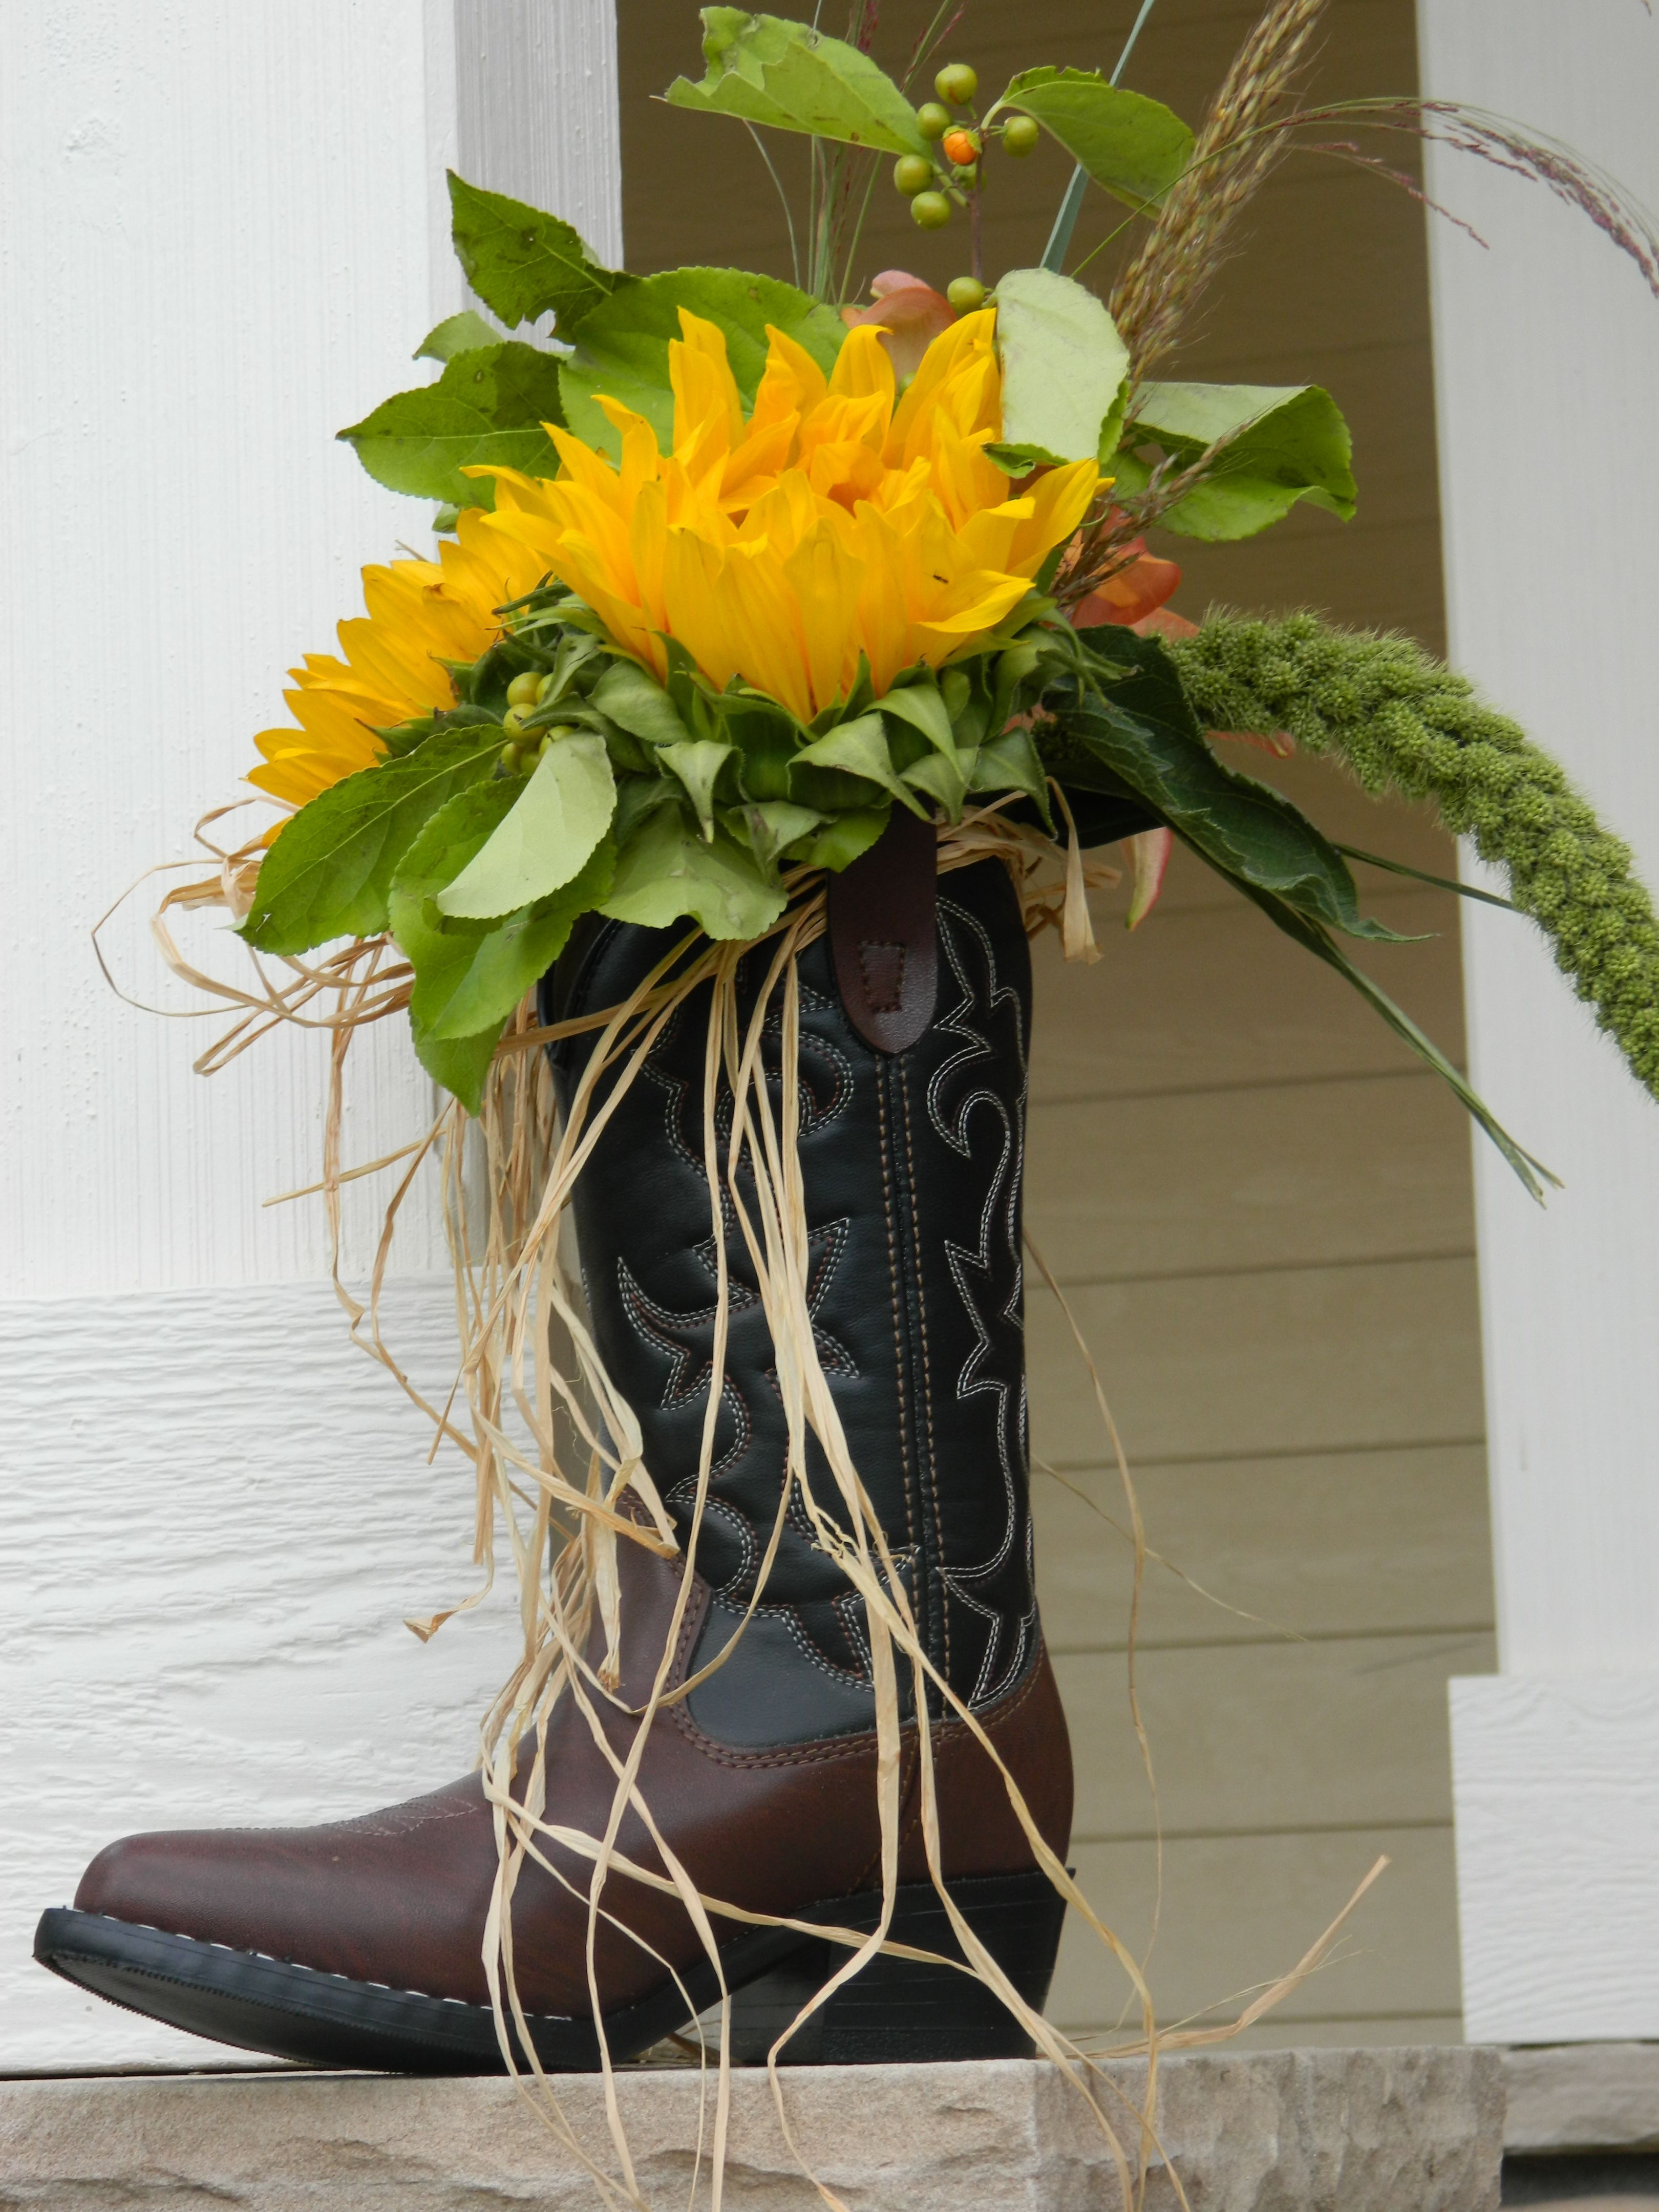 fa1f7ab7a1d36d Western Party Decor boot with flowers. Cowboy Table Decoration Ideas |  western party theme ideas adults | Interiors by Mary Susan